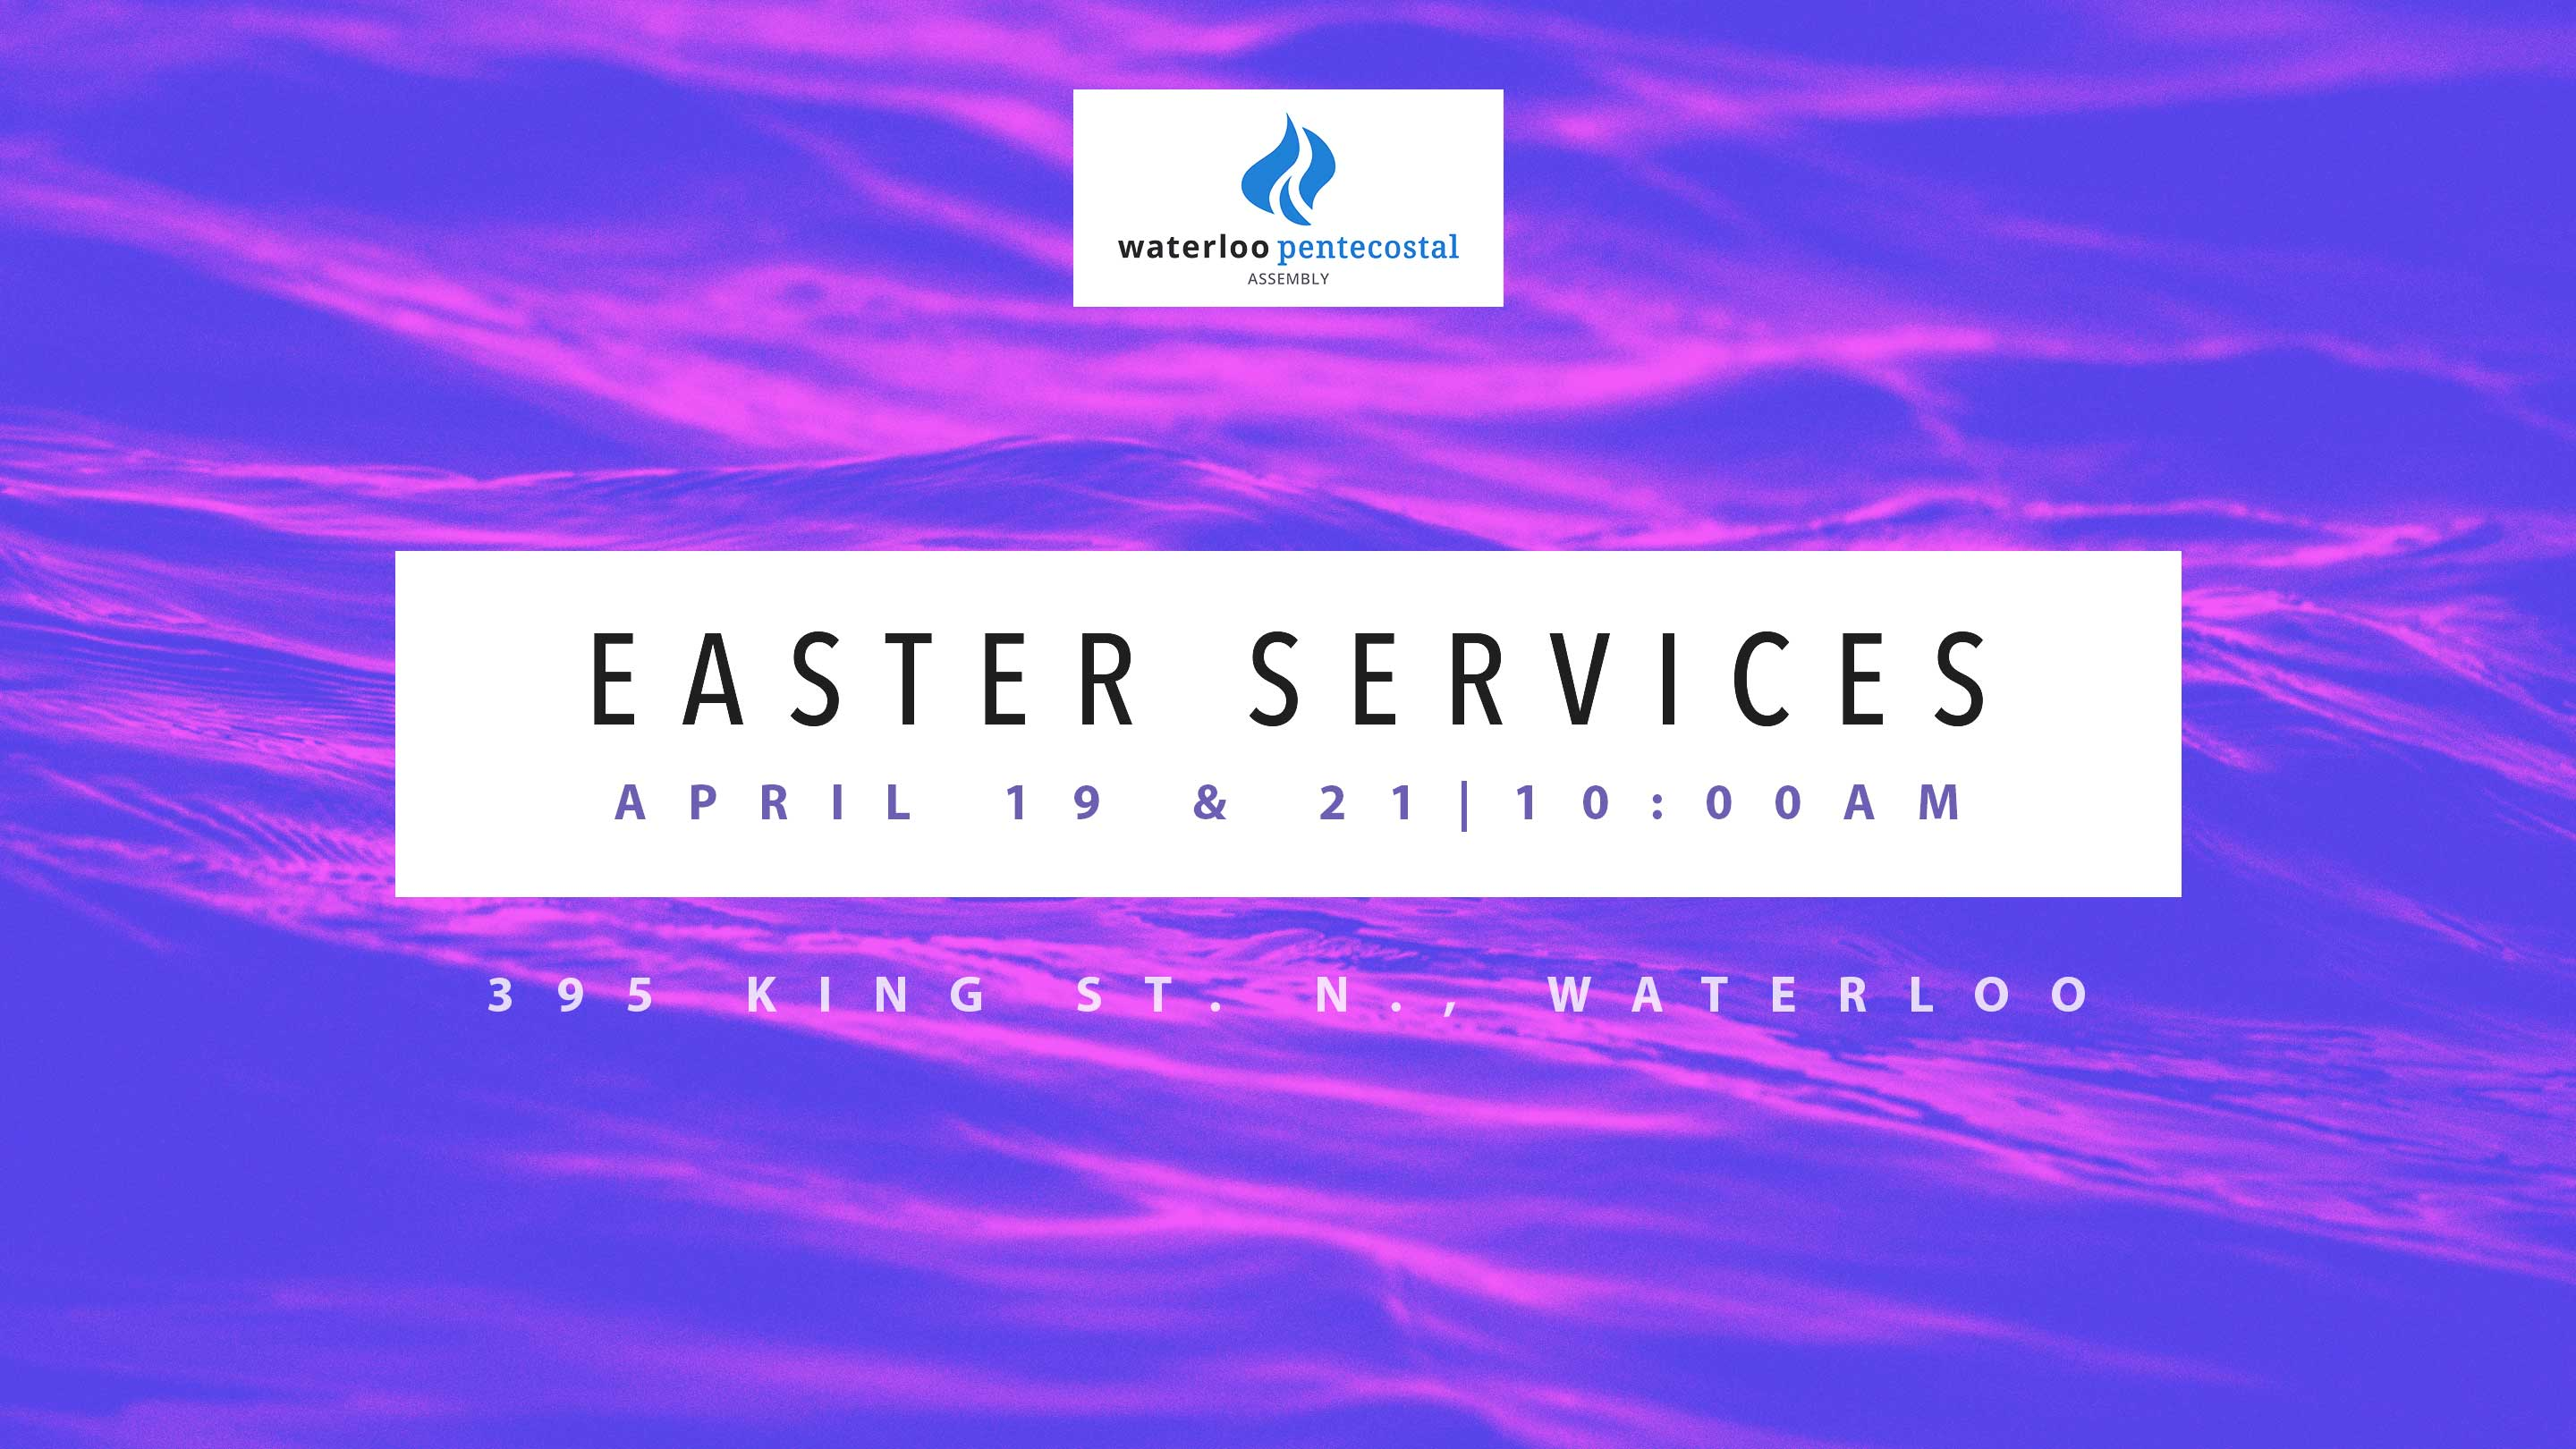 easter services, April 19 and 21 at 10:00am